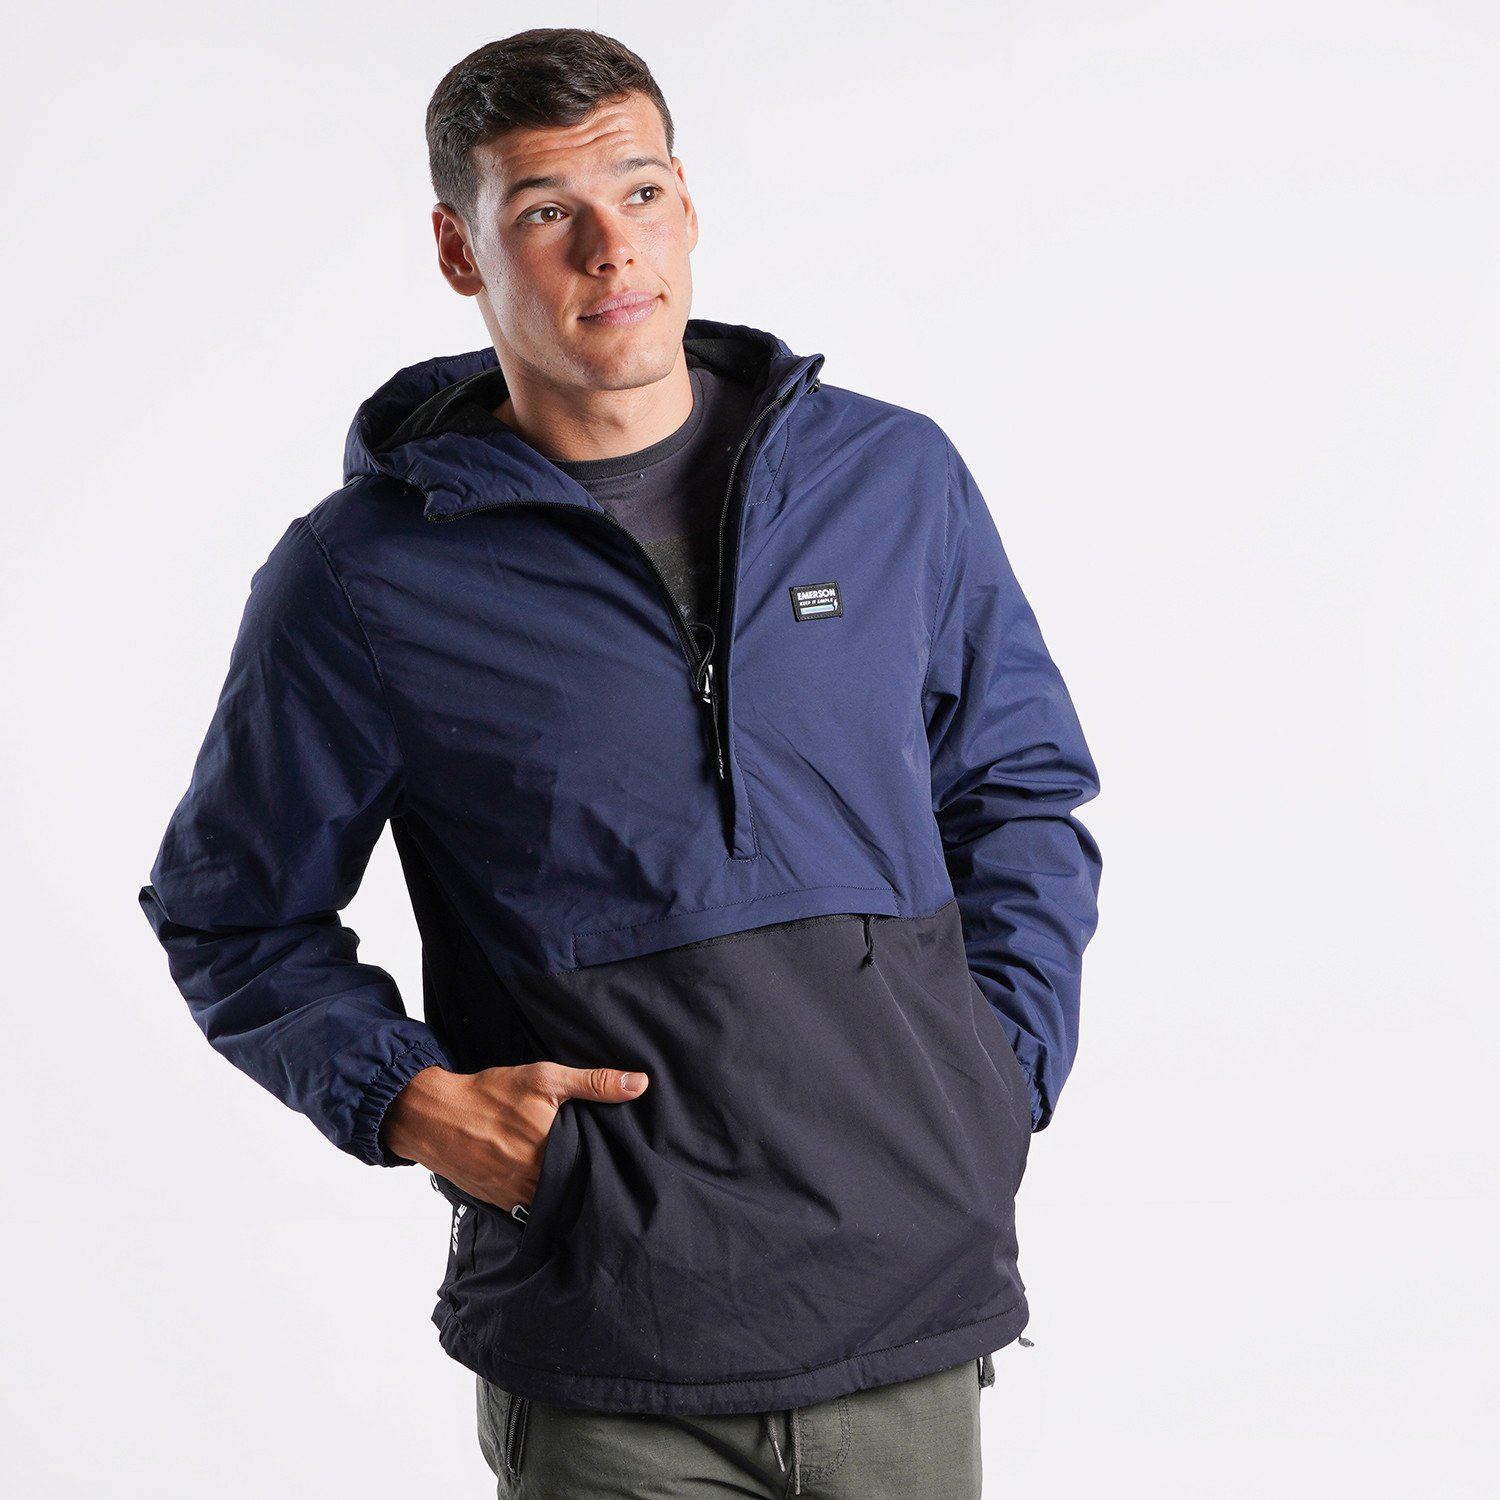 Emerson Men's Pullover Jacket with Hood (9000090498_55858)